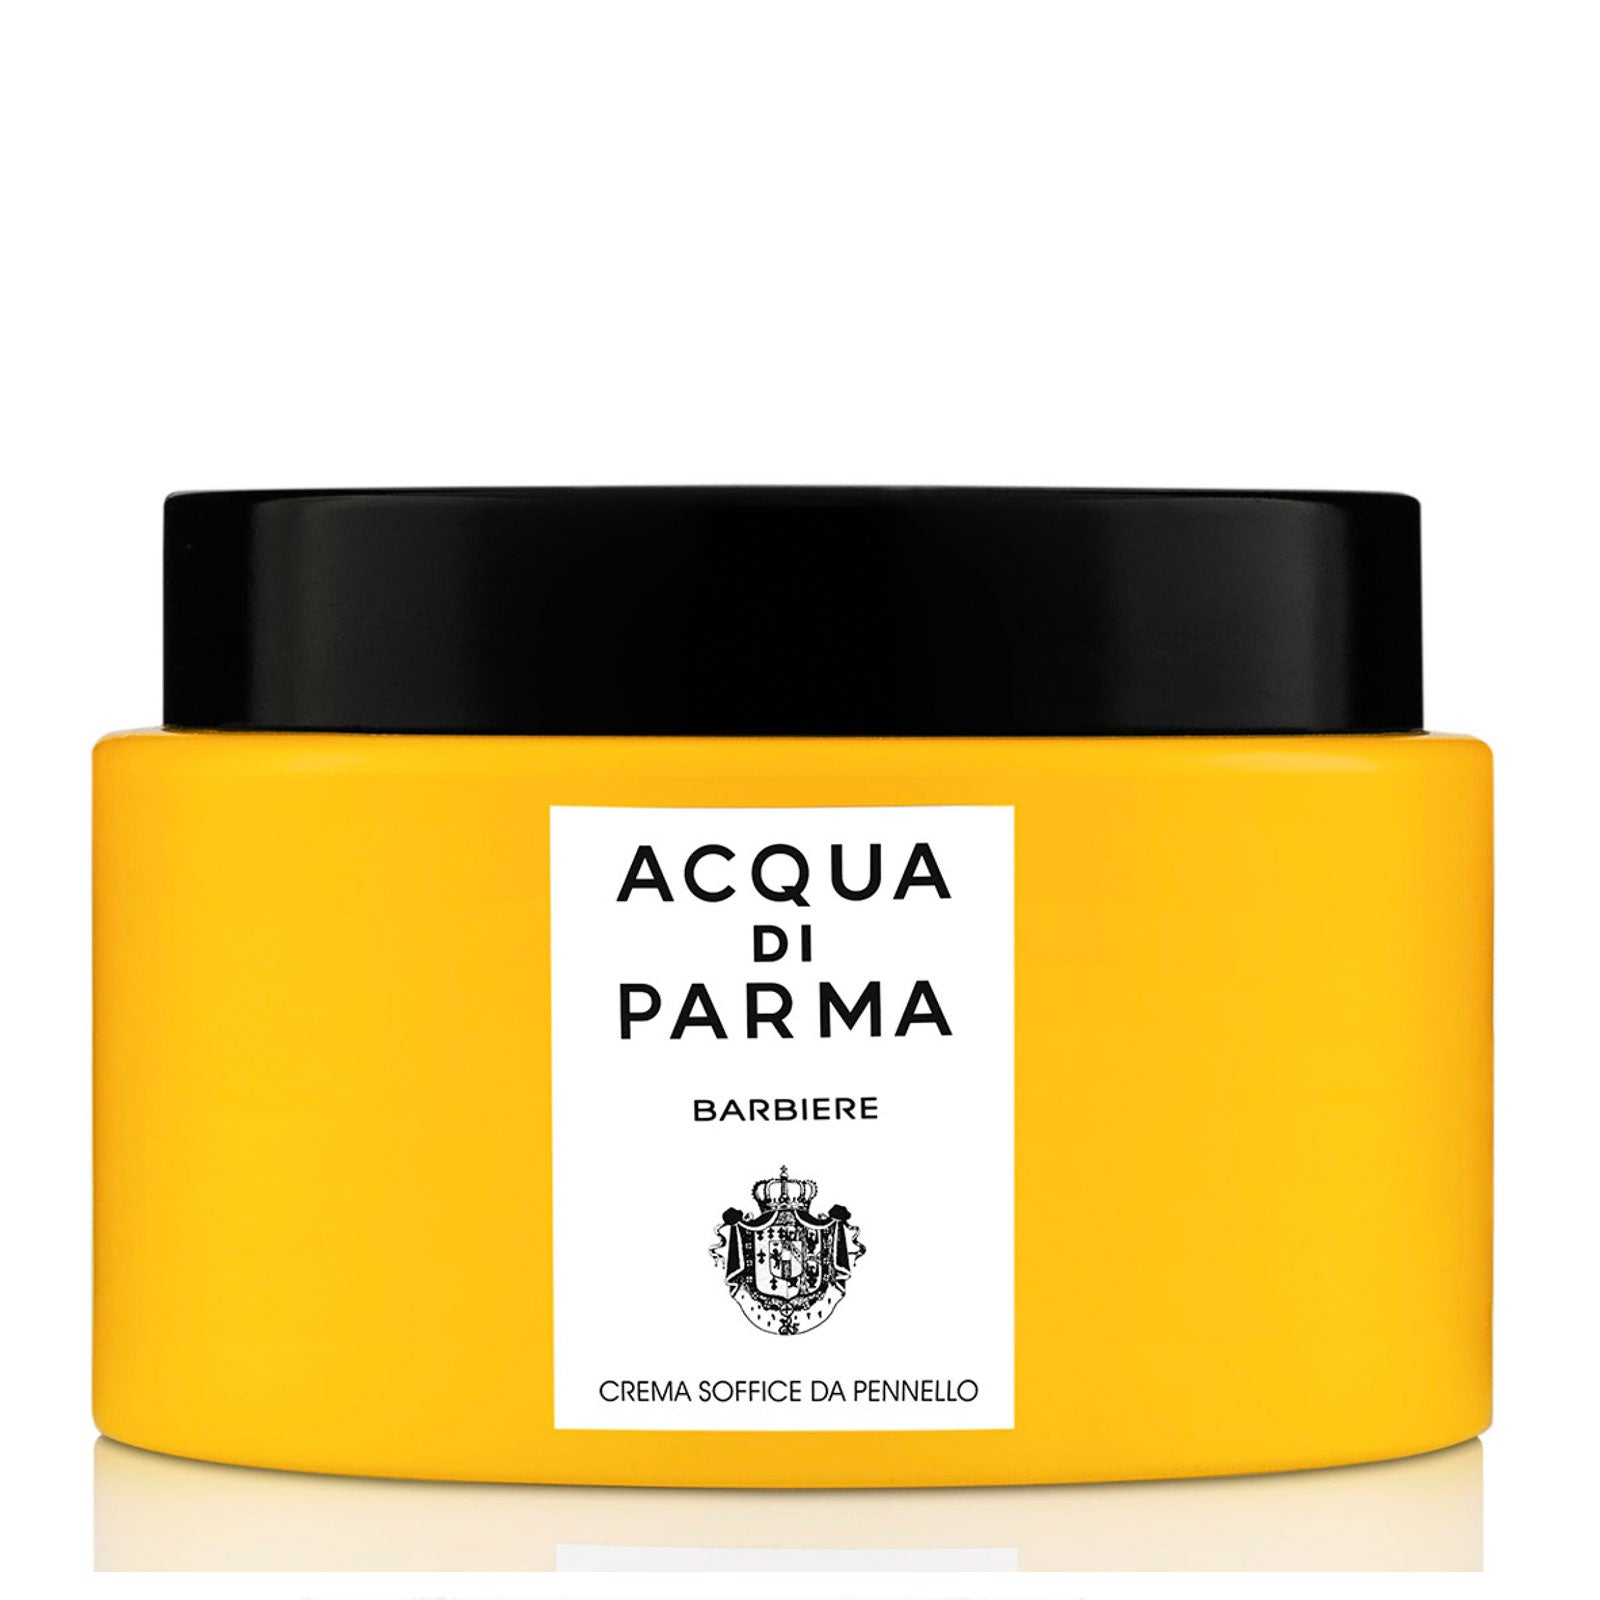 Acqua di Parma Barbiere Shaving Cream 125g